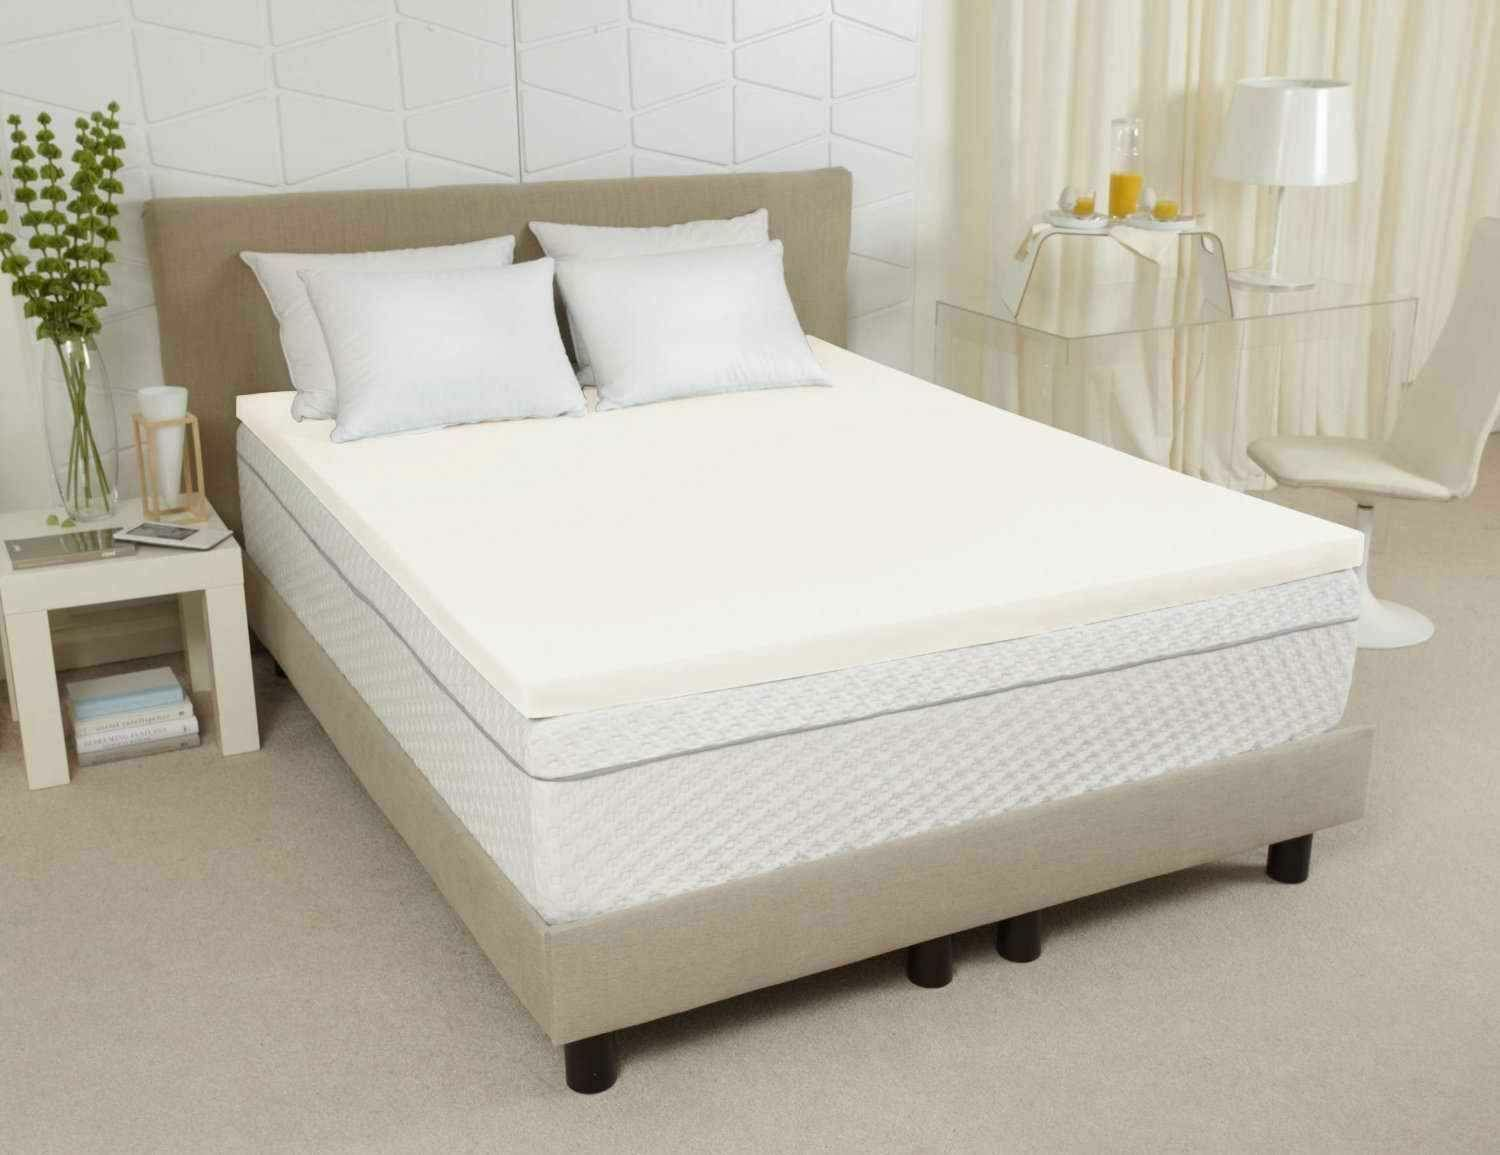 How to pick a memory foam mattress topper ebay Top rated memory foam mattress